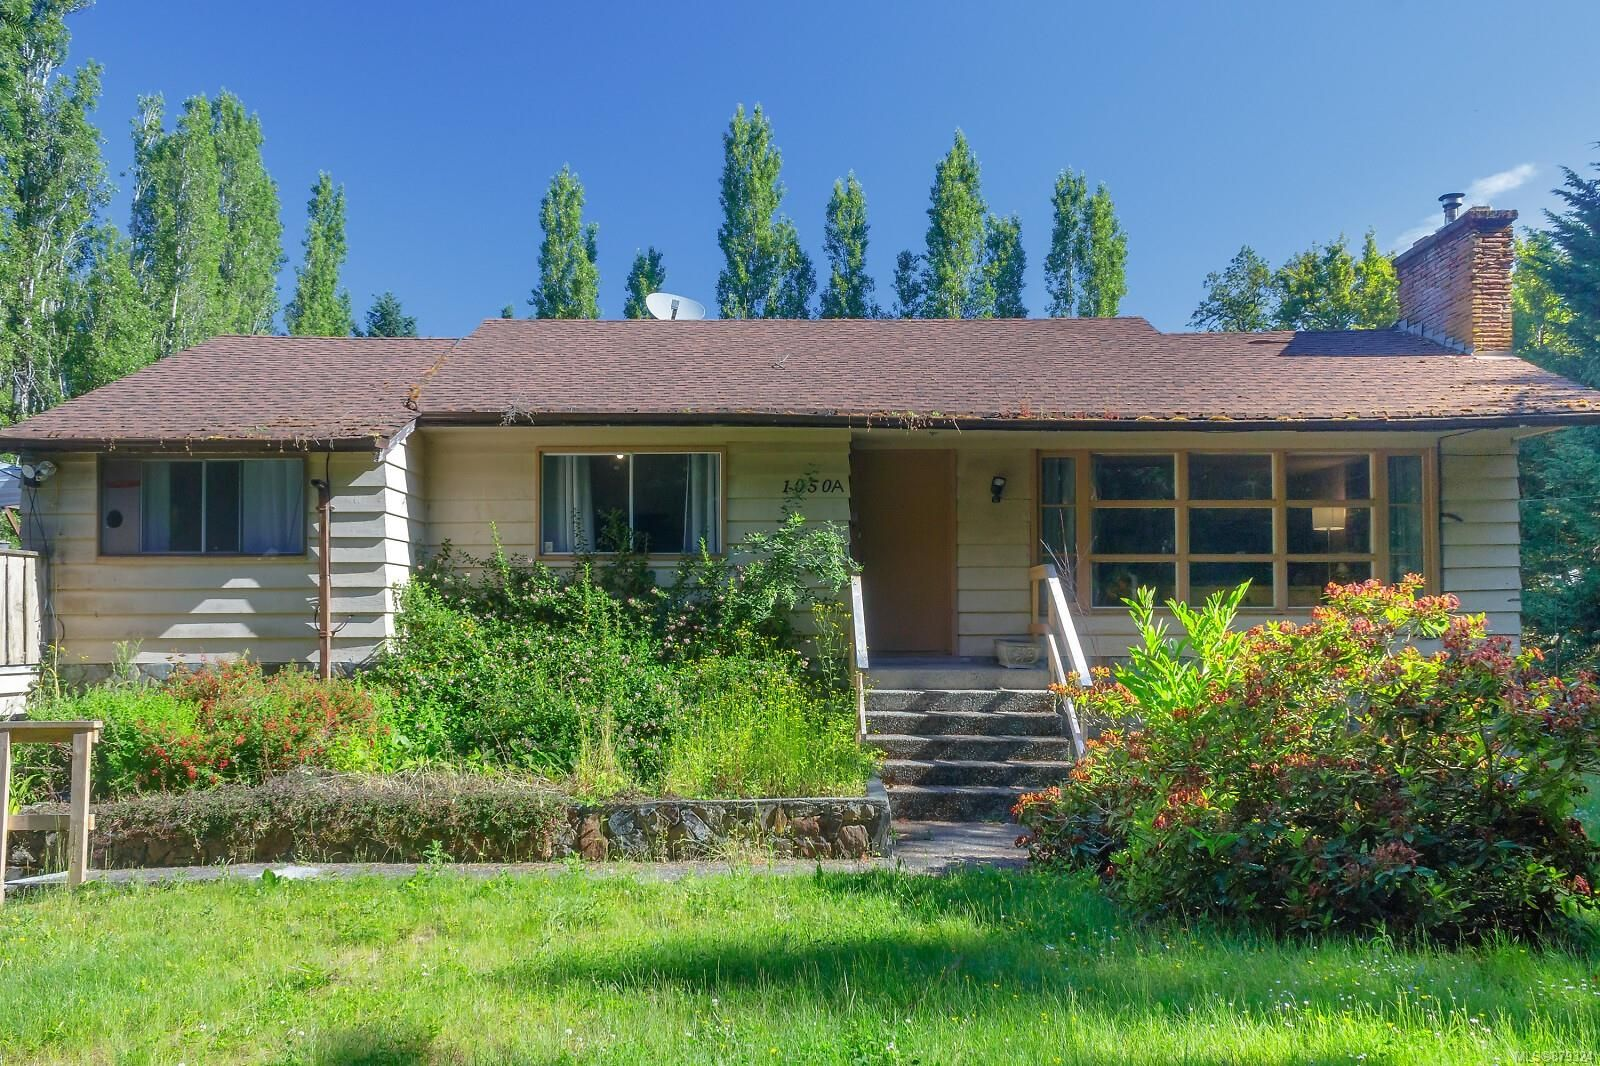 Main Photo: 1050A McTavish Rd in : NS Ardmore House for sale (North Saanich)  : MLS®# 879324